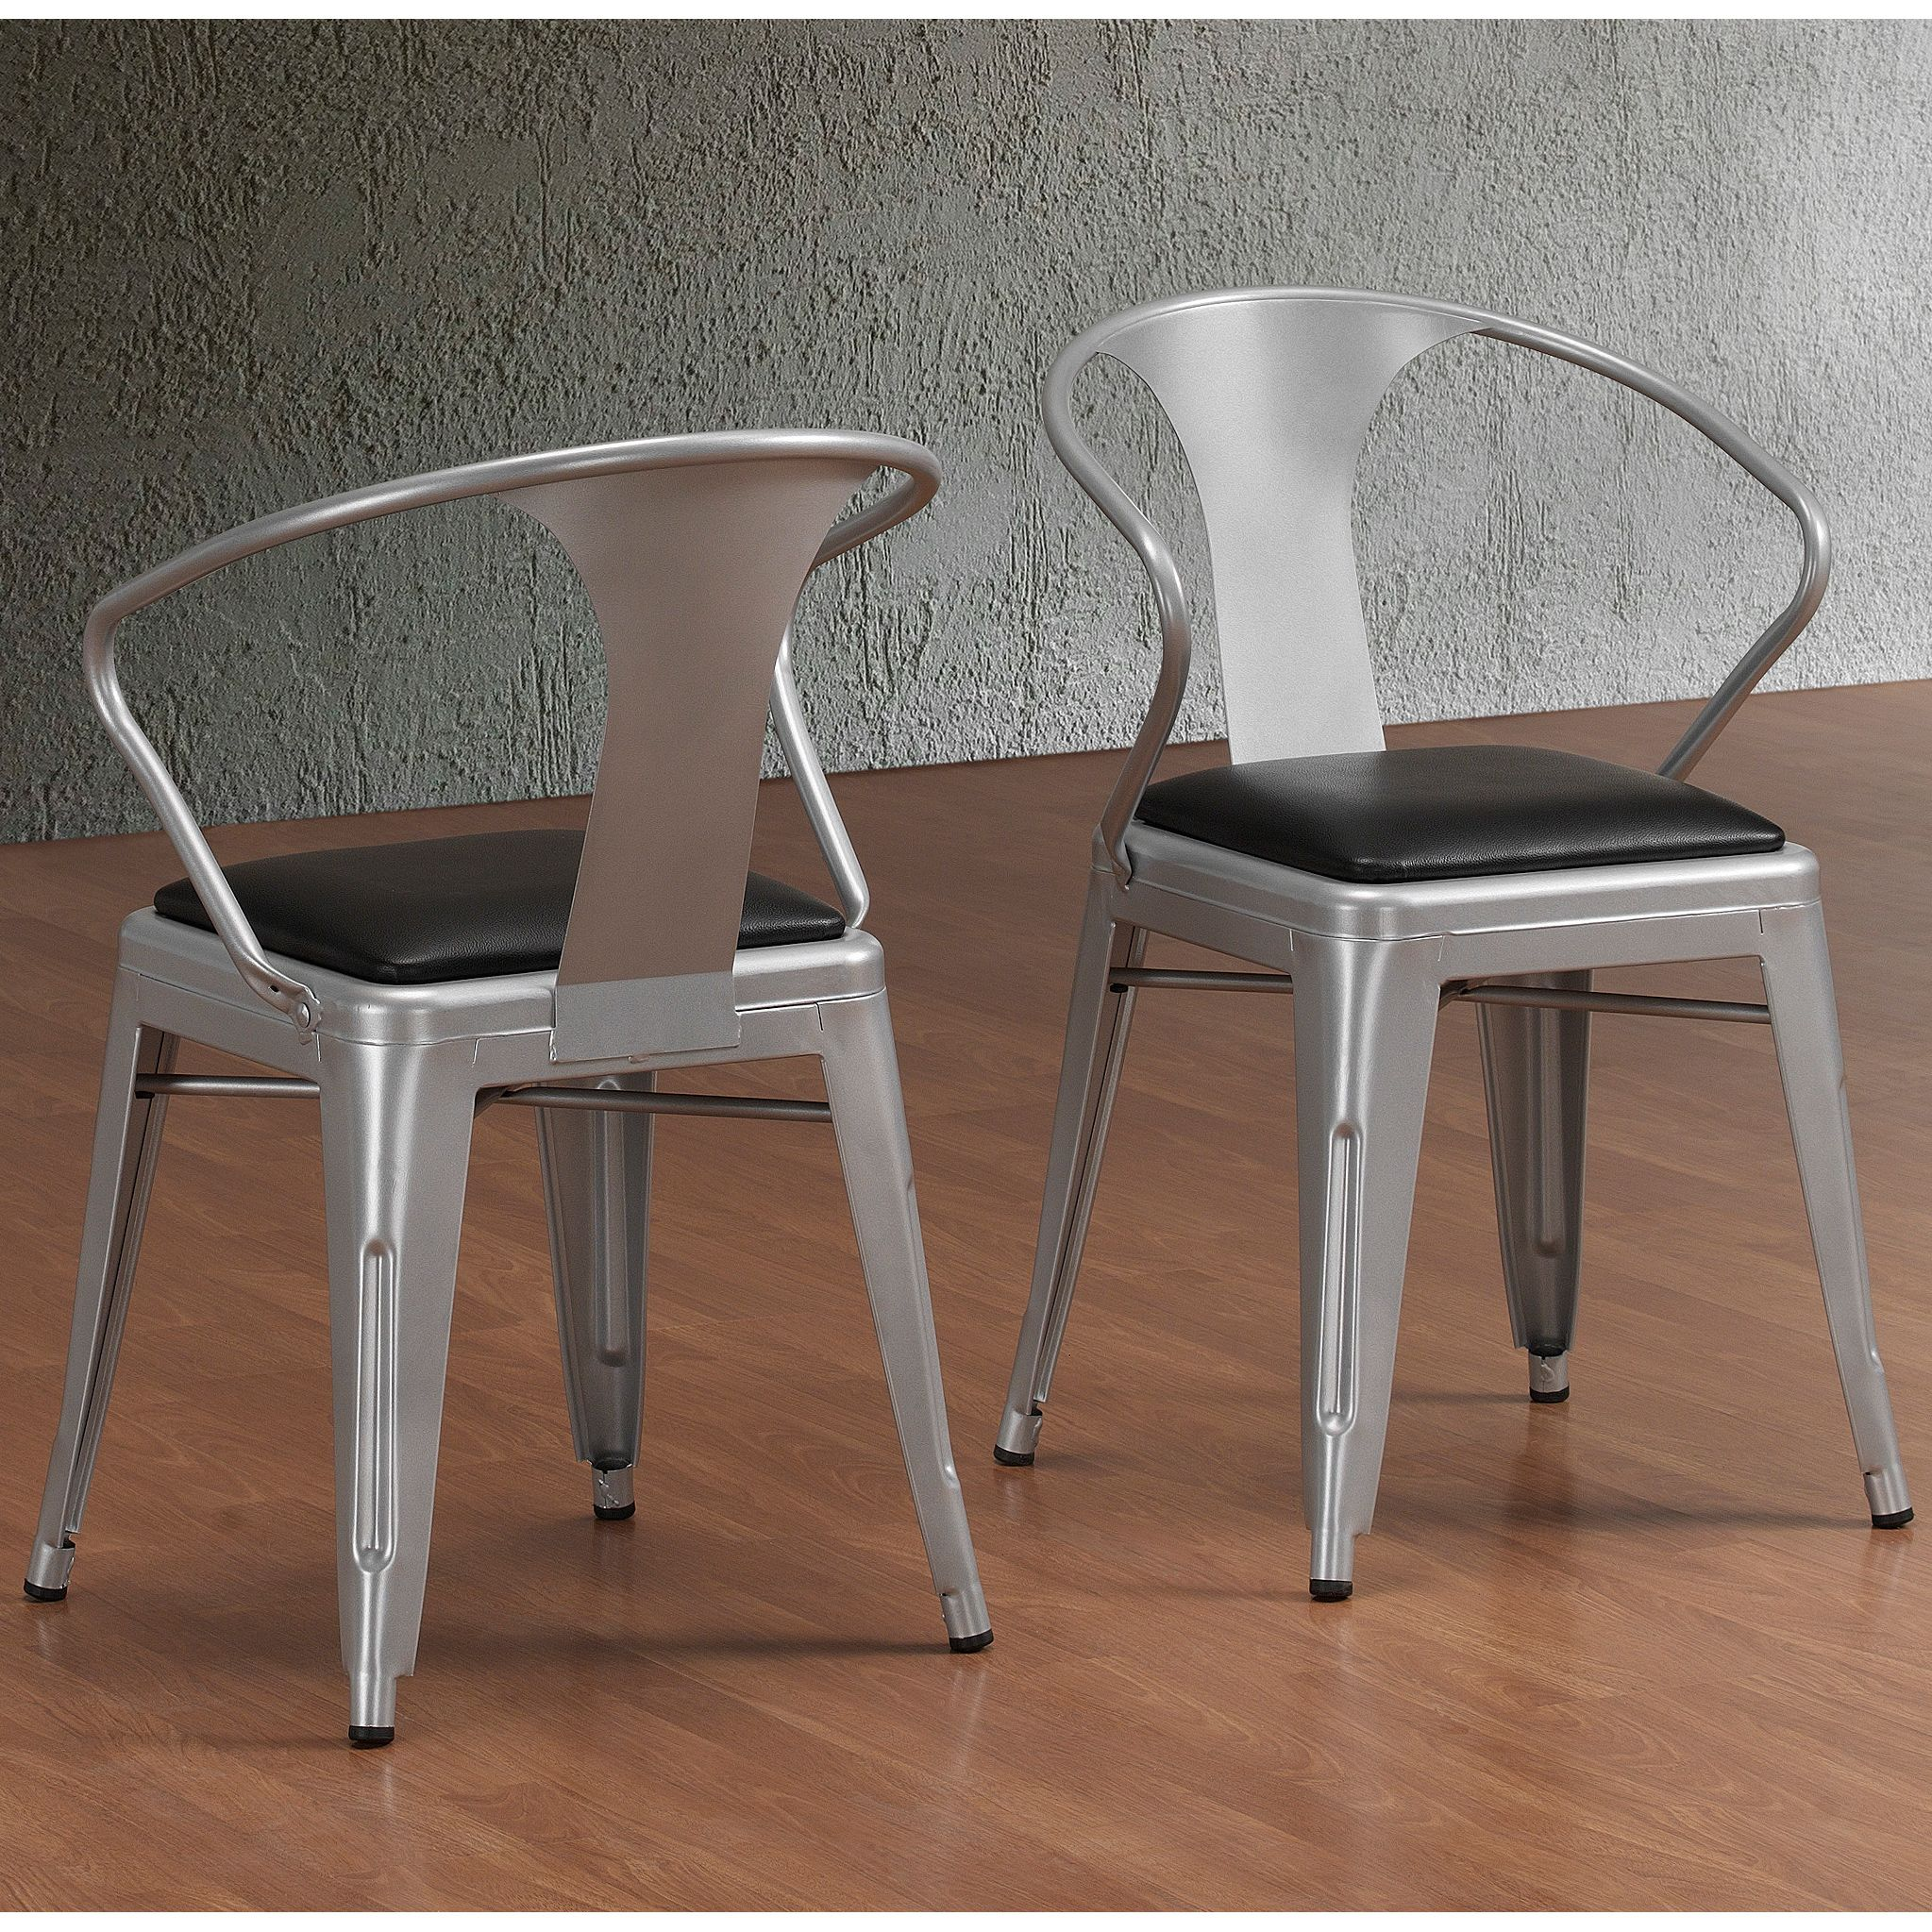 Delightful These Durable, Padded Silver Tabouret Stacking Chairs Showcase A  100 Percent Steel Construction That